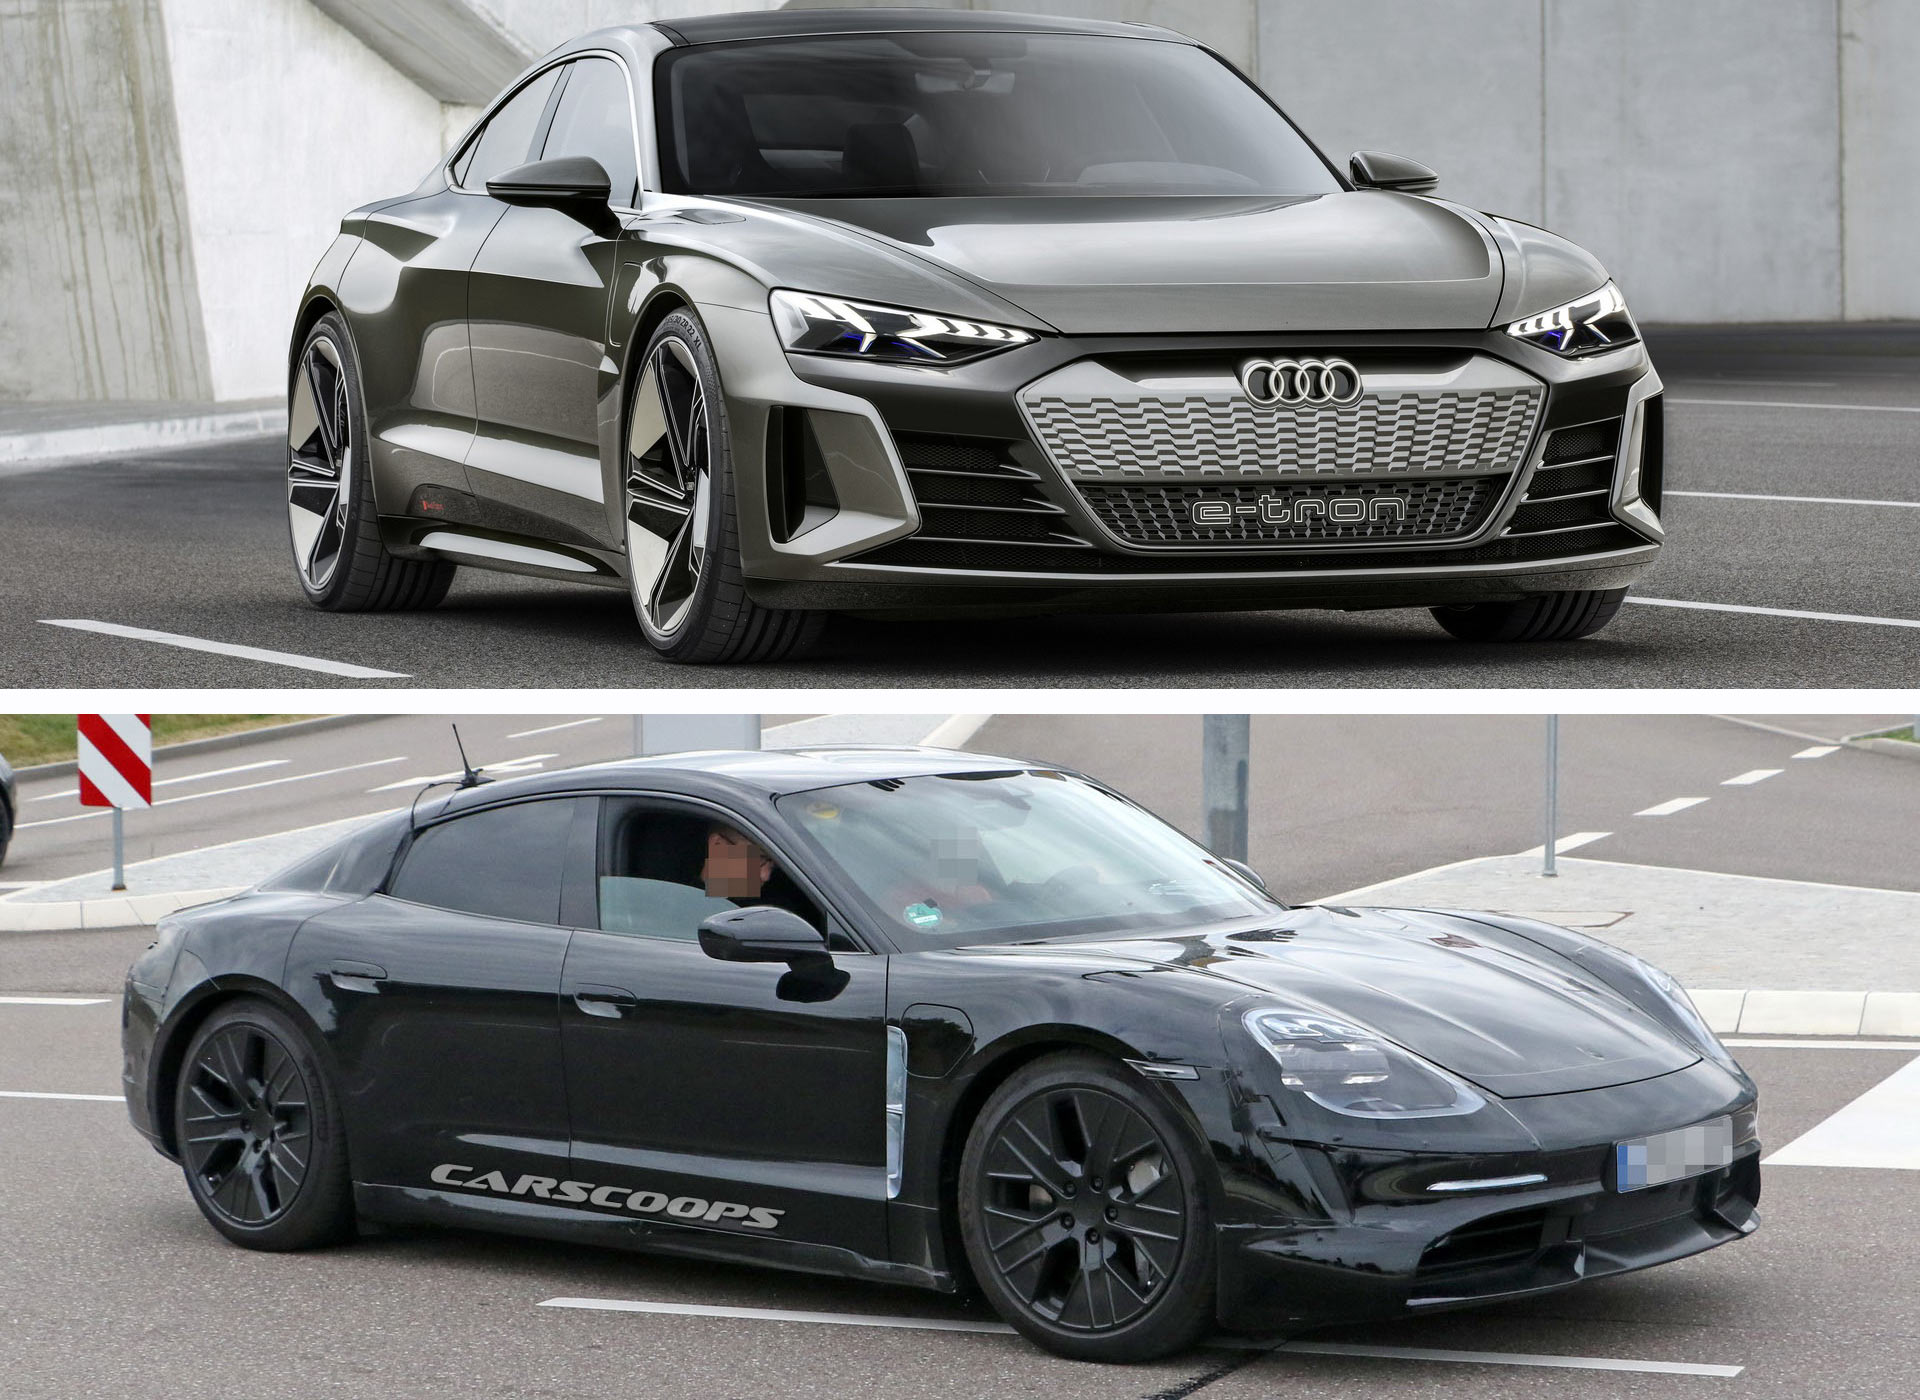 Will The Audi E-Tron GT Steal The Porsche Taycan's Thunder ...